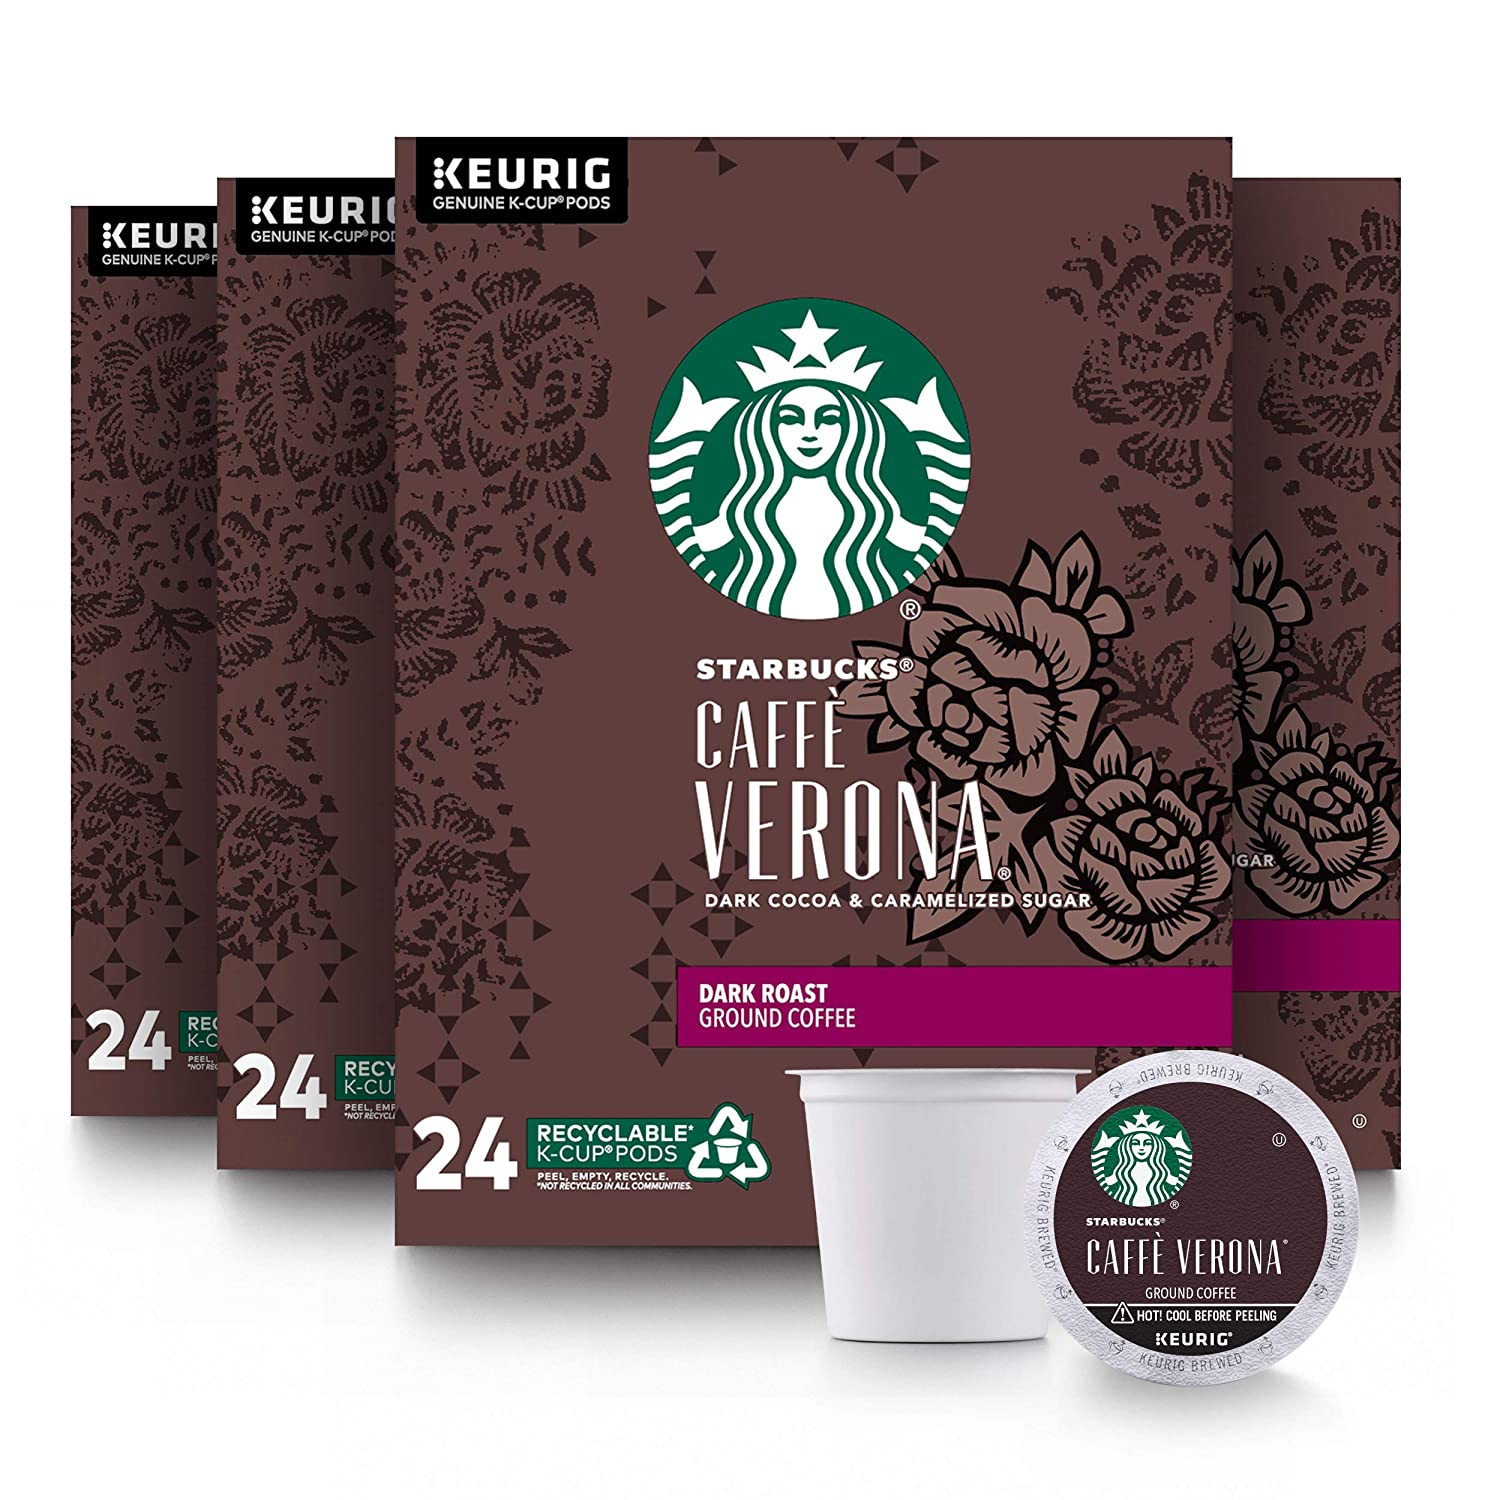 Starbucks Dark Roast K-Cup Coffee Pods — Caffè Verona for Keurig Brewers — 4 boxes (96 pods total)